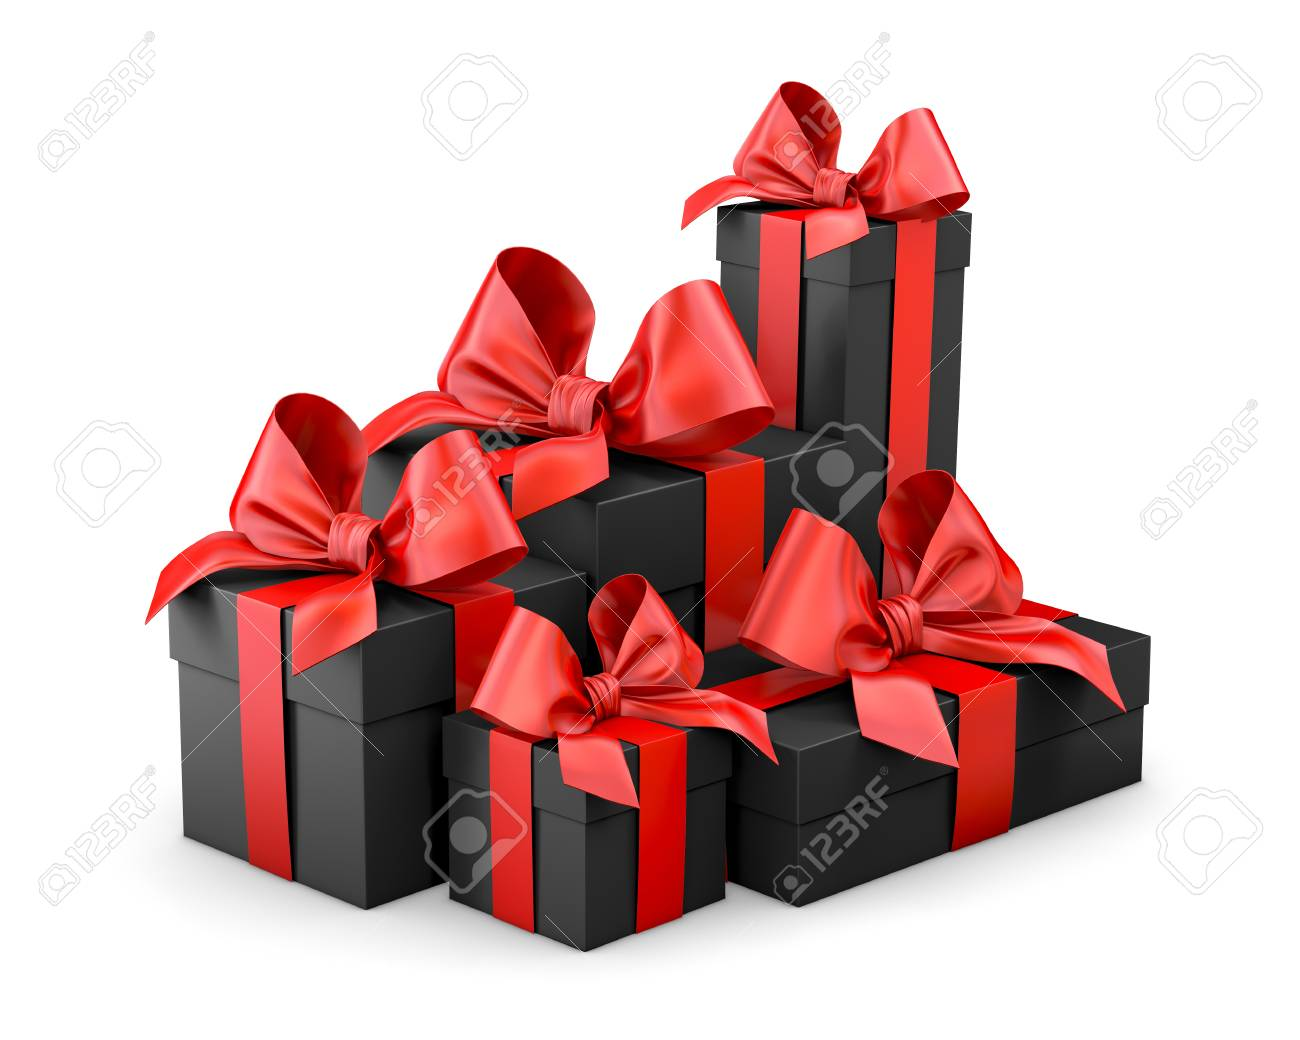 Black Gift Boxes Christmas And New Year S Day Group Pile Red Black Gift Boxes